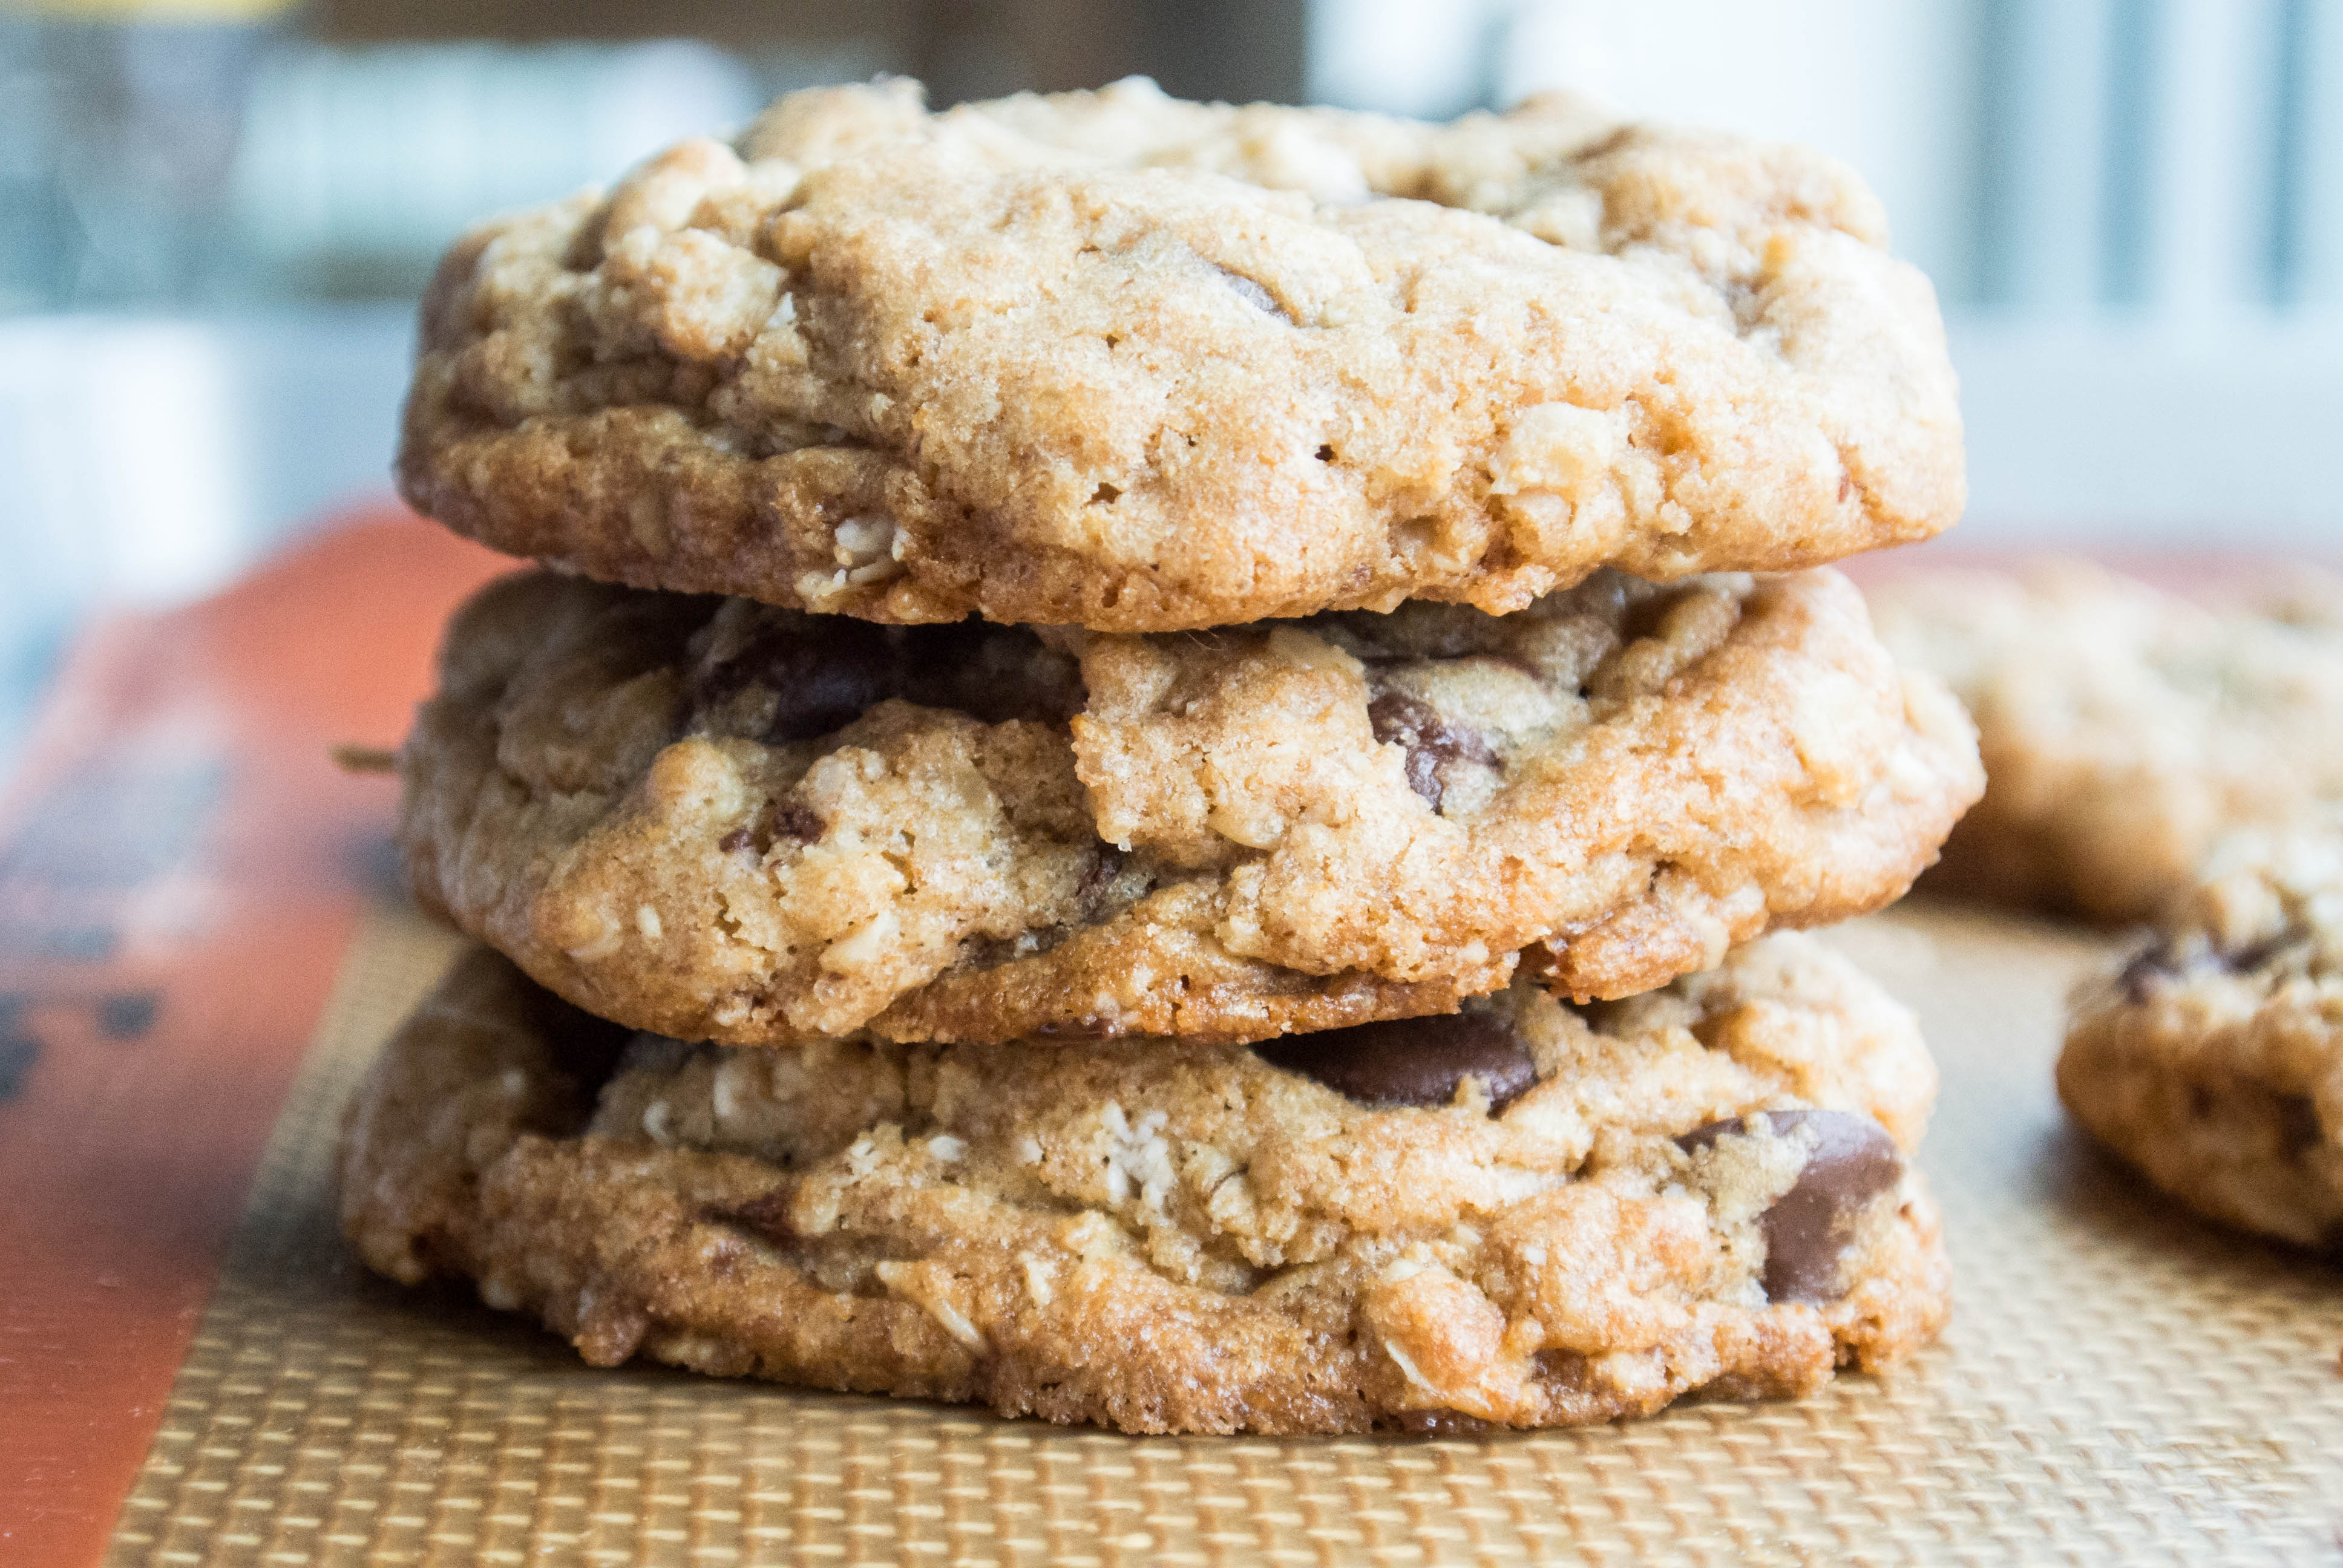 Oatmeal raisin cookie recipe with coconut oil